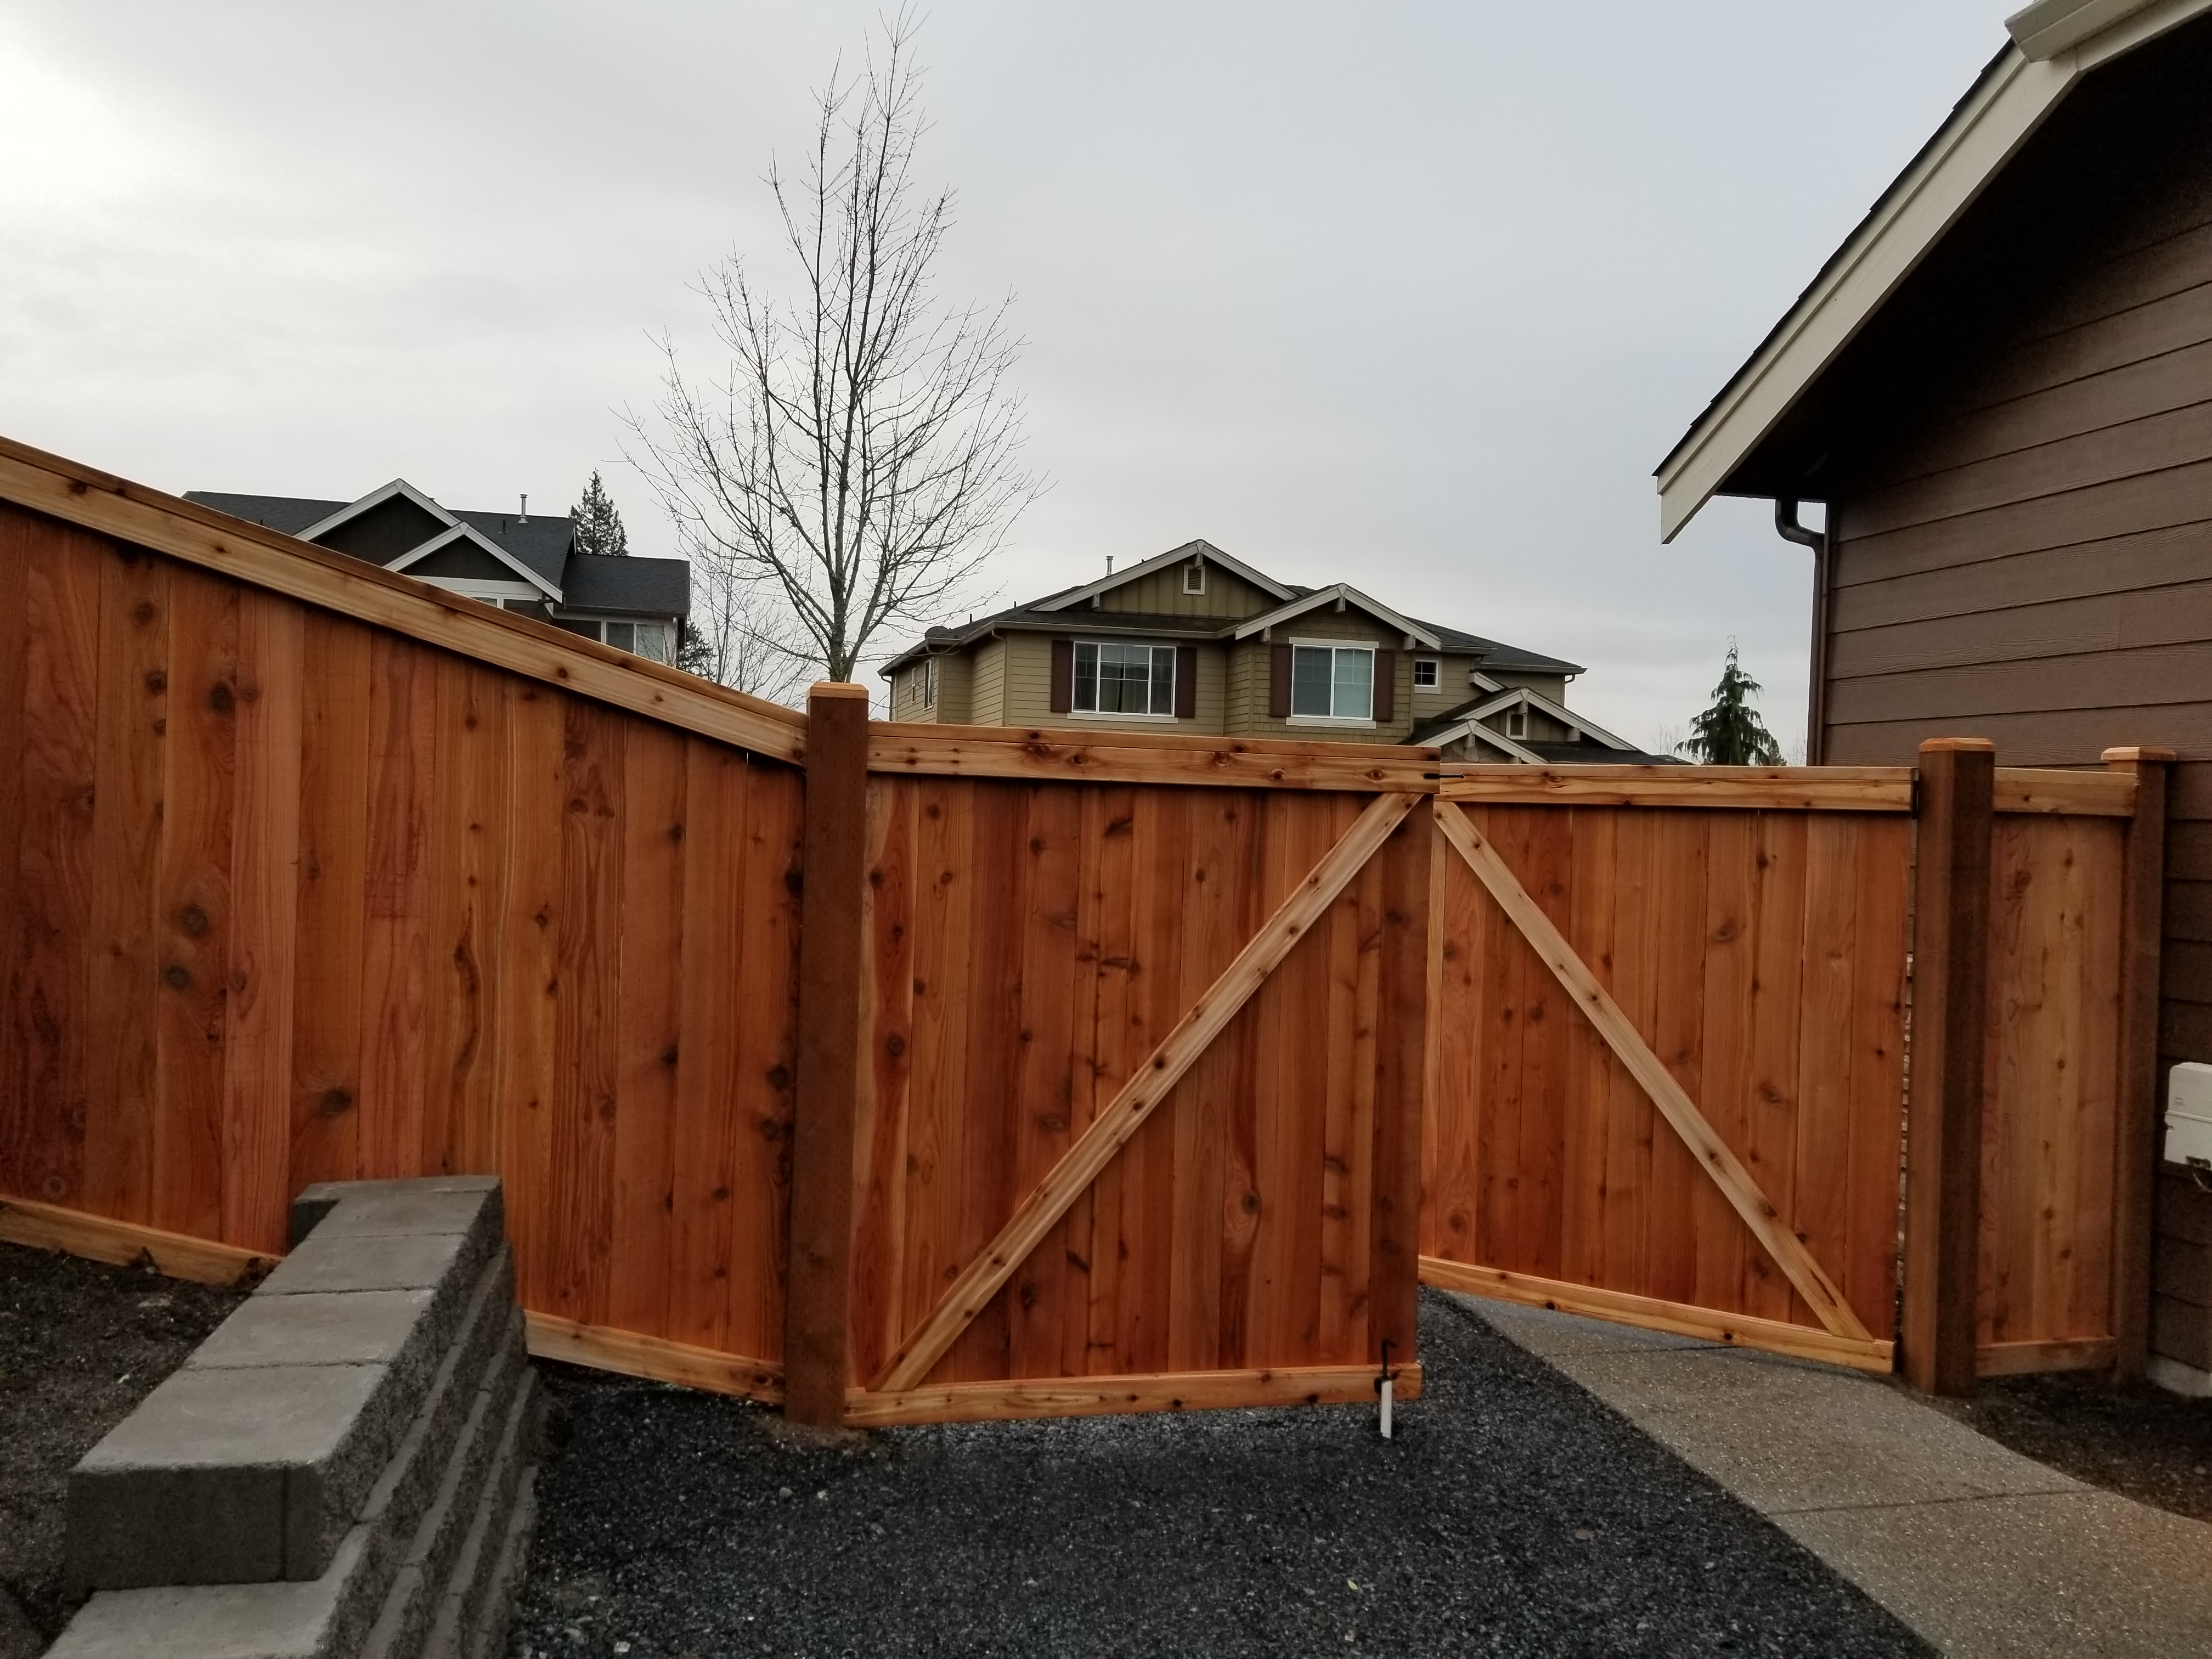 A wooden fence and gate.